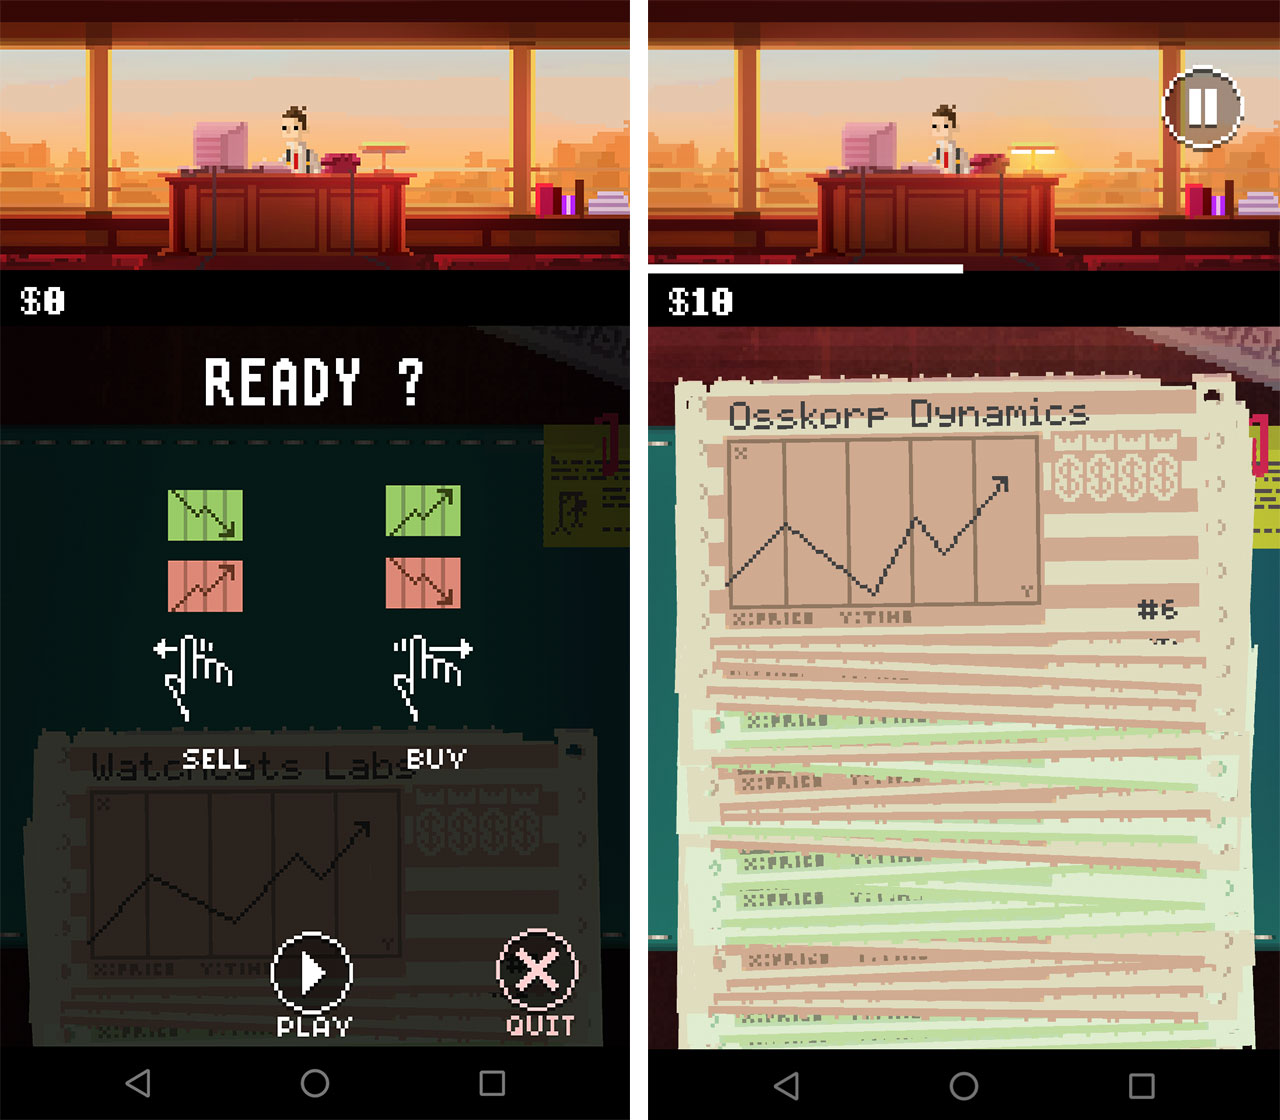 A screenshot of The Firm's gameplay